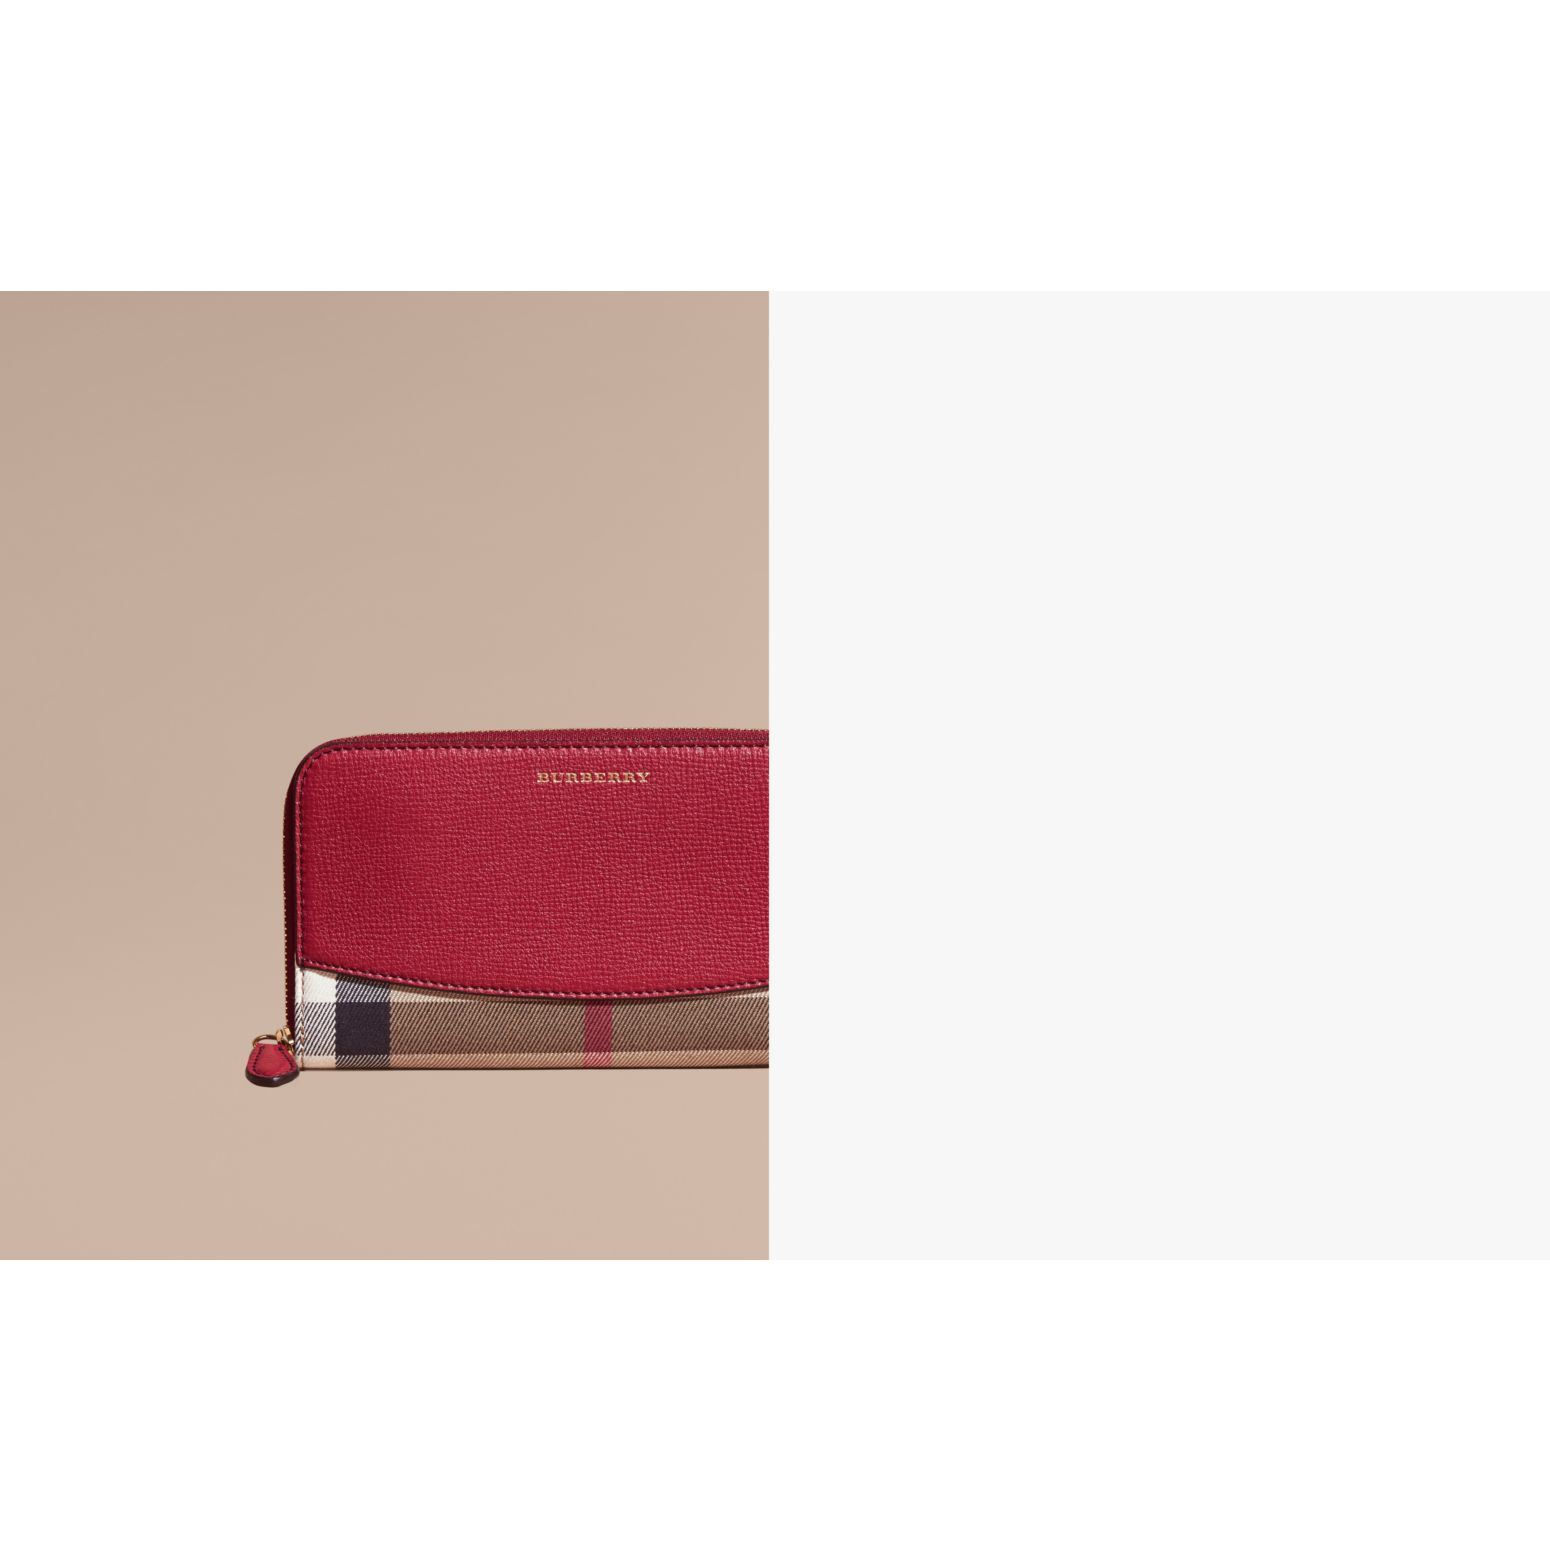 House Check and Leather Ziparound Wallet in Military Red - Women | Burberry Australia - gallery image 2